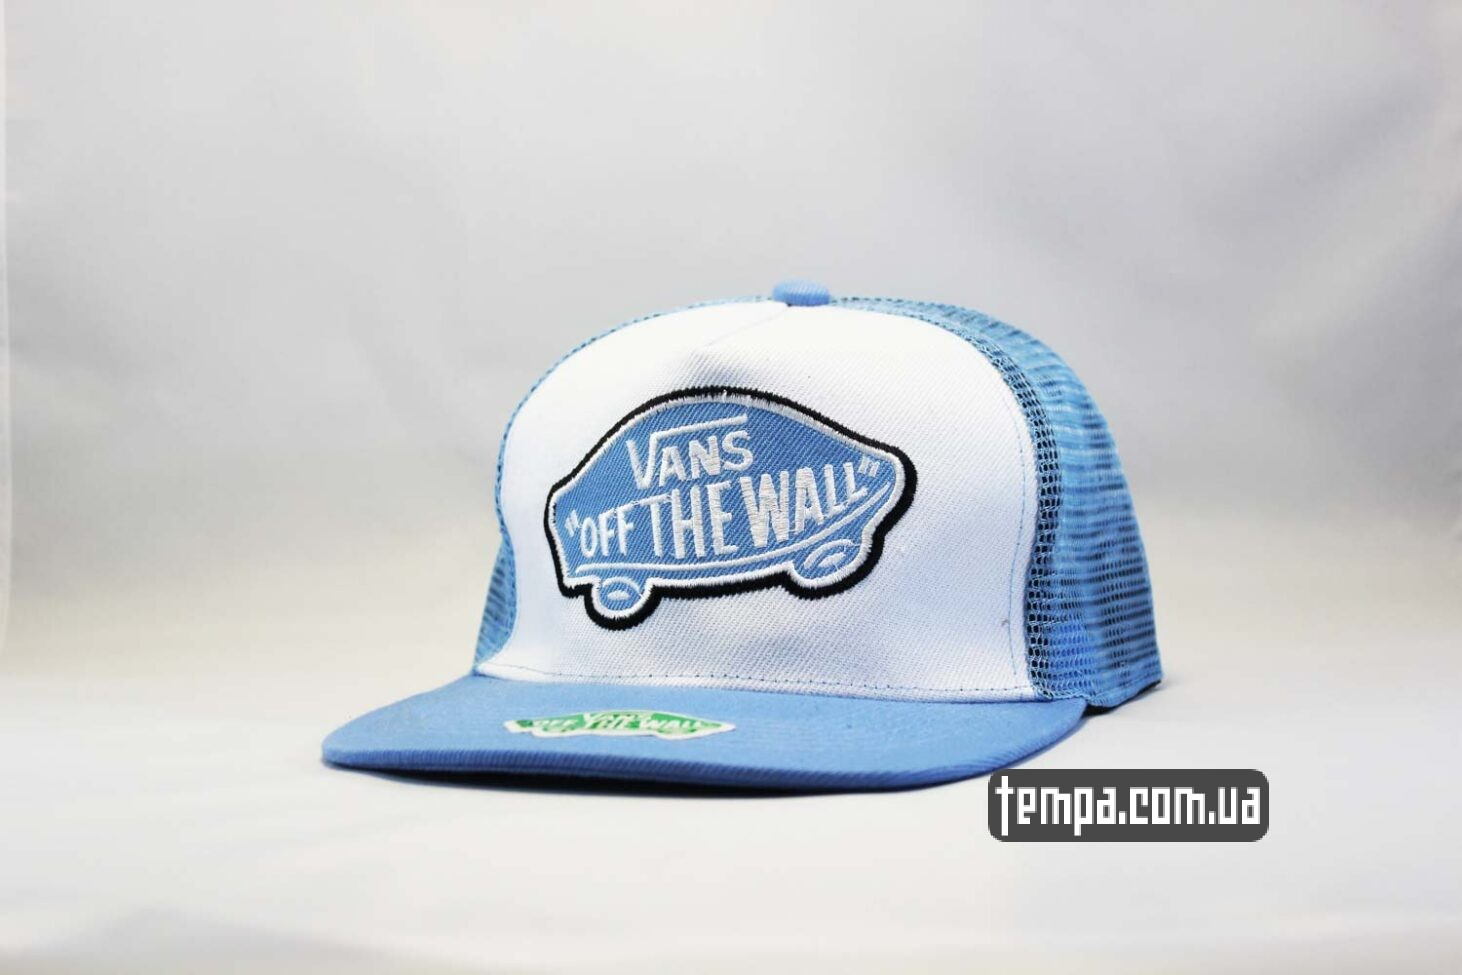 кепка trucker snapback VANS OFF THE WALL голубая с сеткой